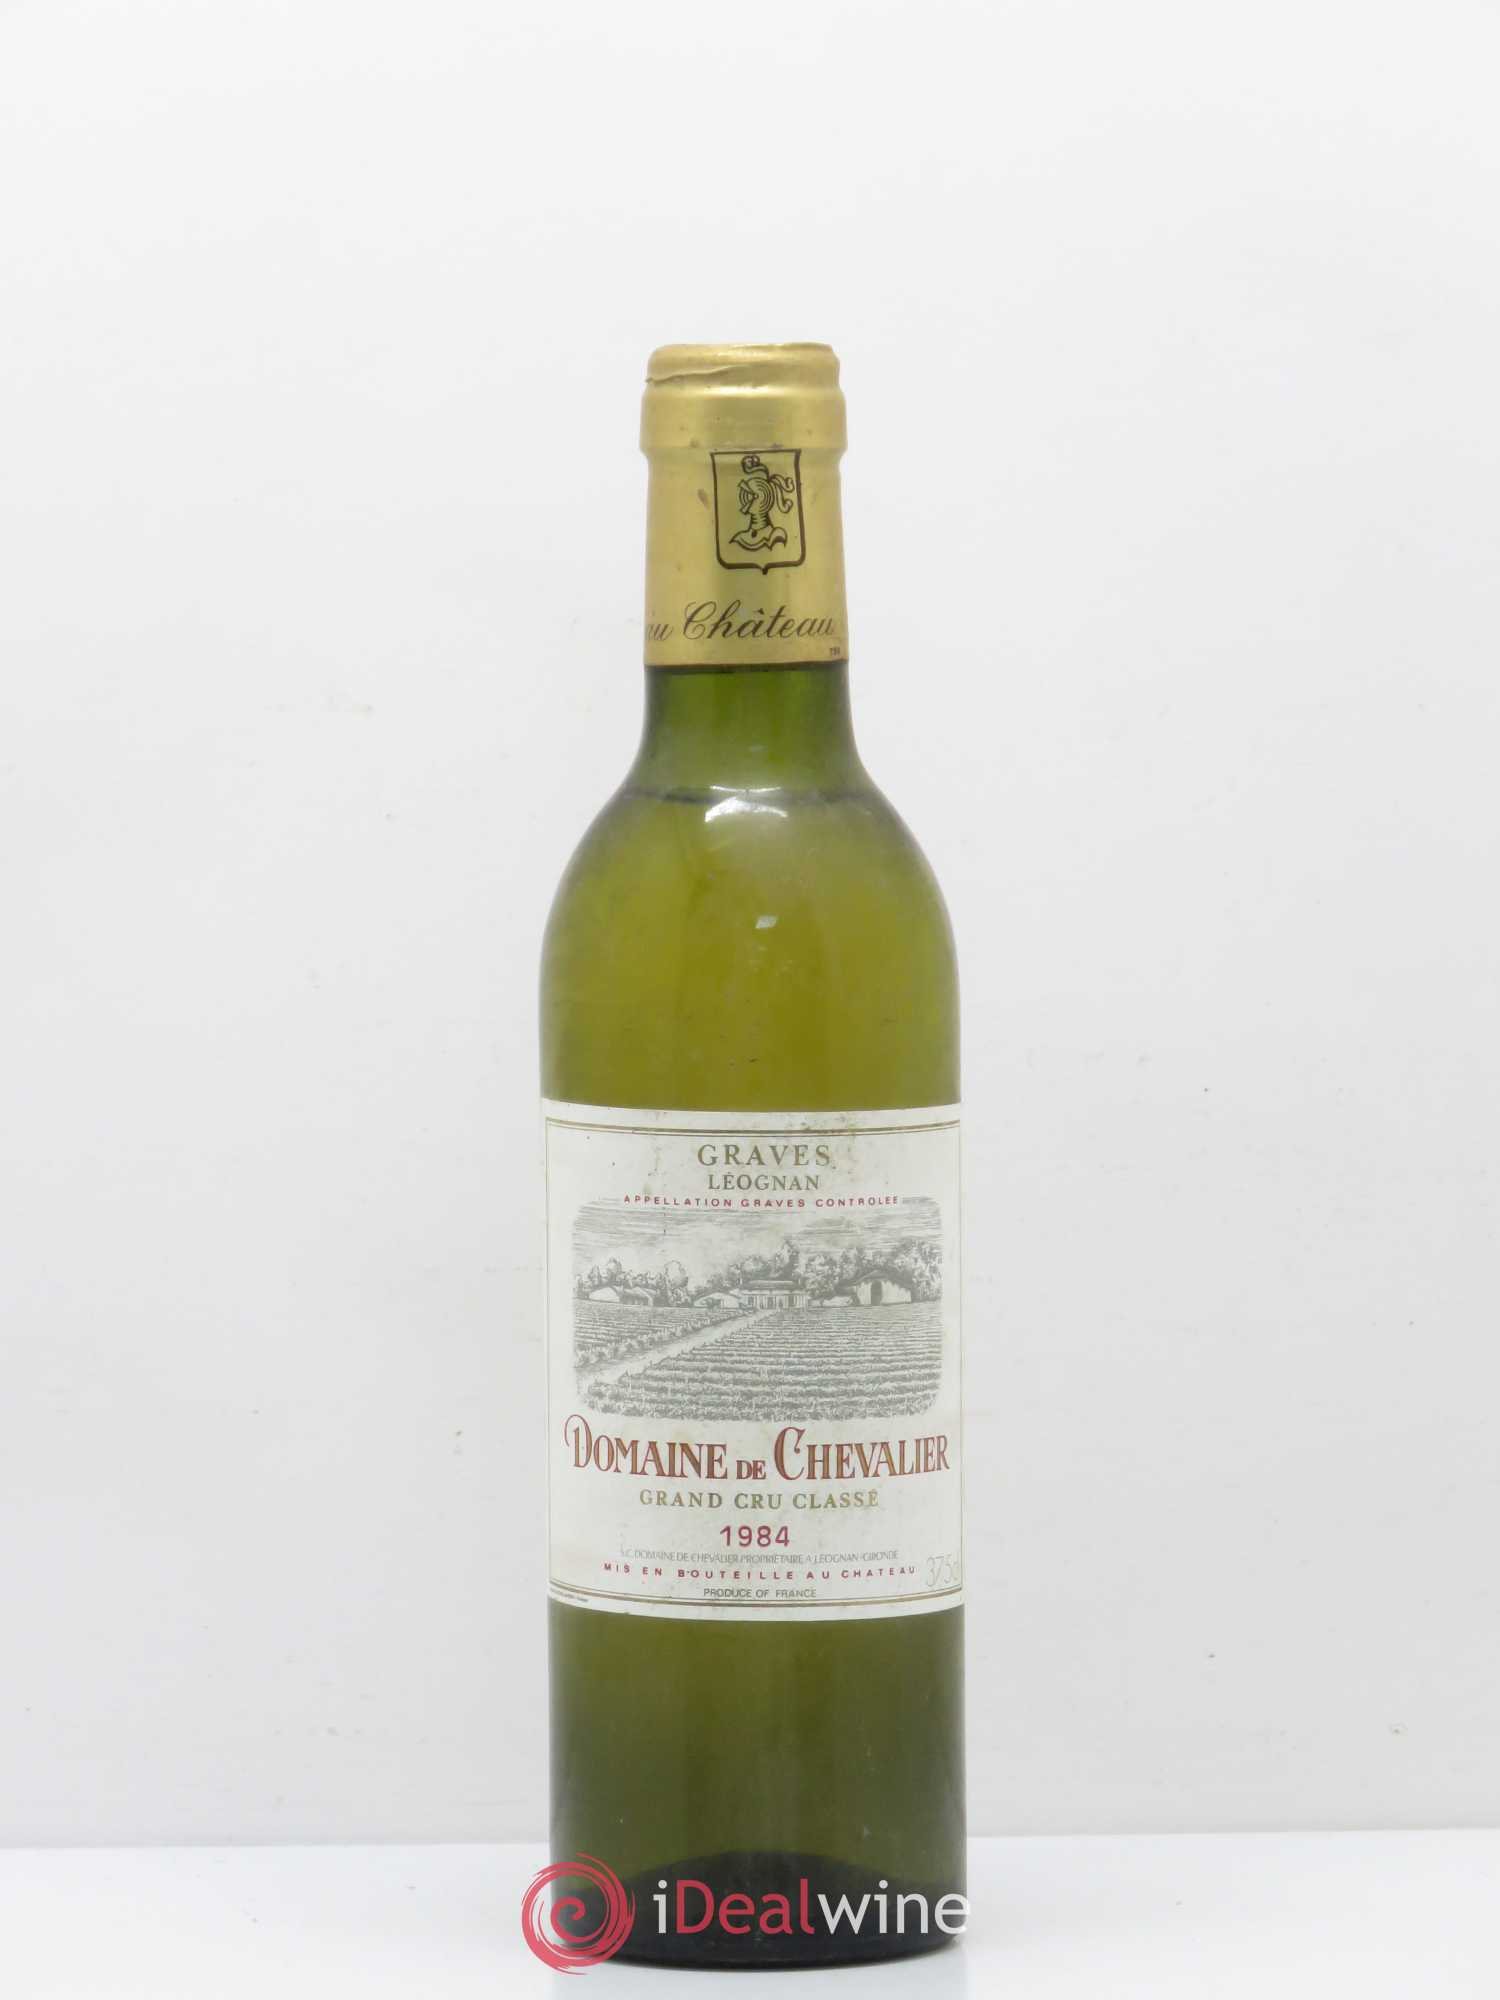 Domaine de Chevalier Cru Classé de Graves  1984 - Lot of 1 Half-bottle